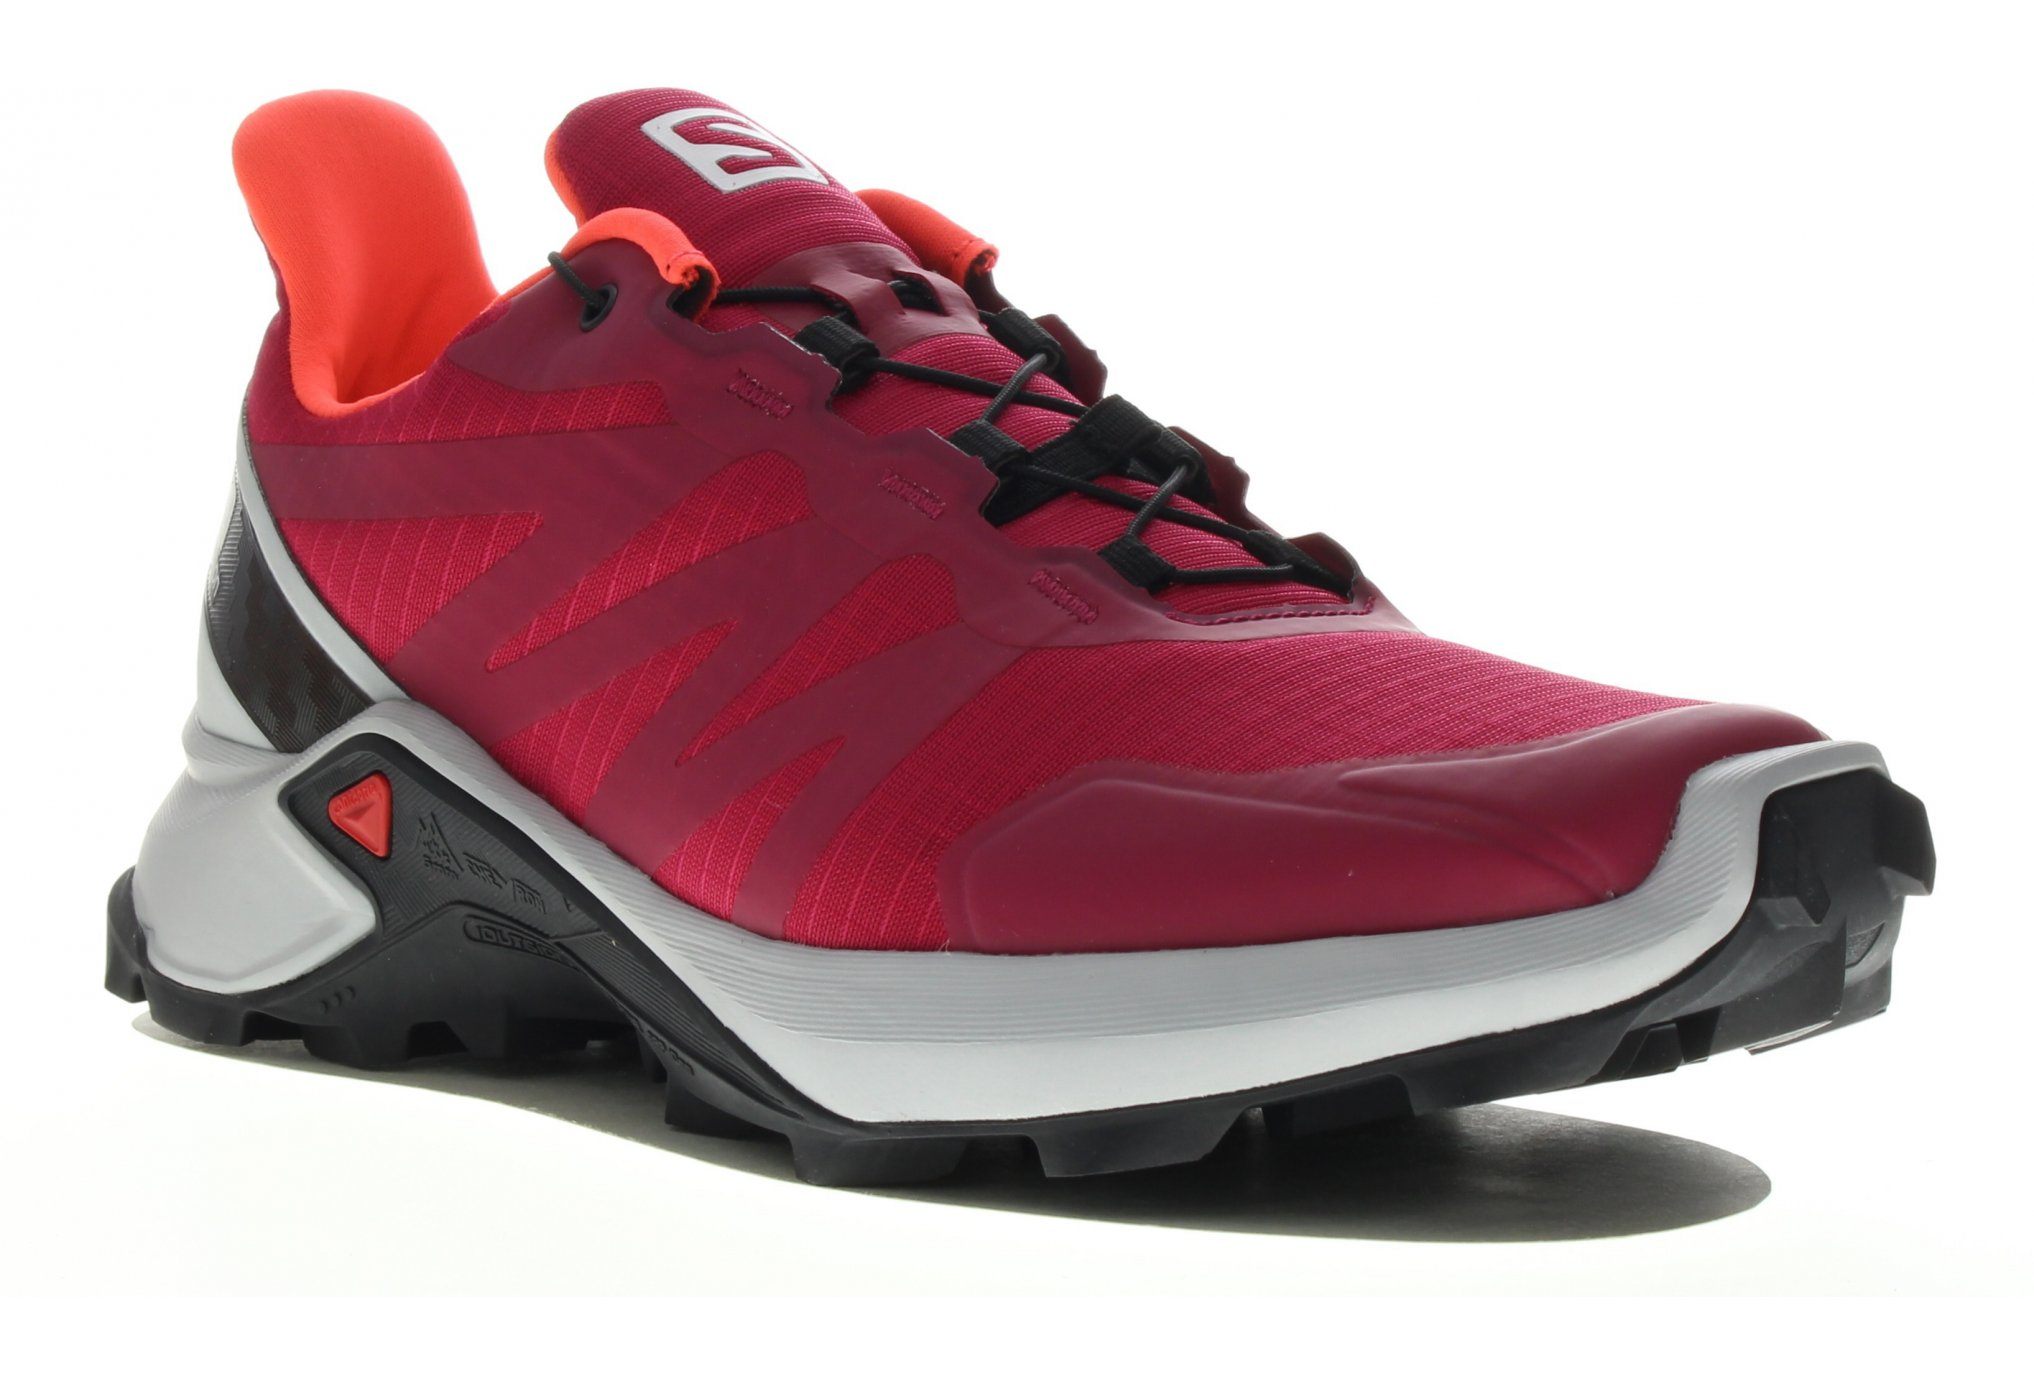 Salomon Supercross Chaussures running femme